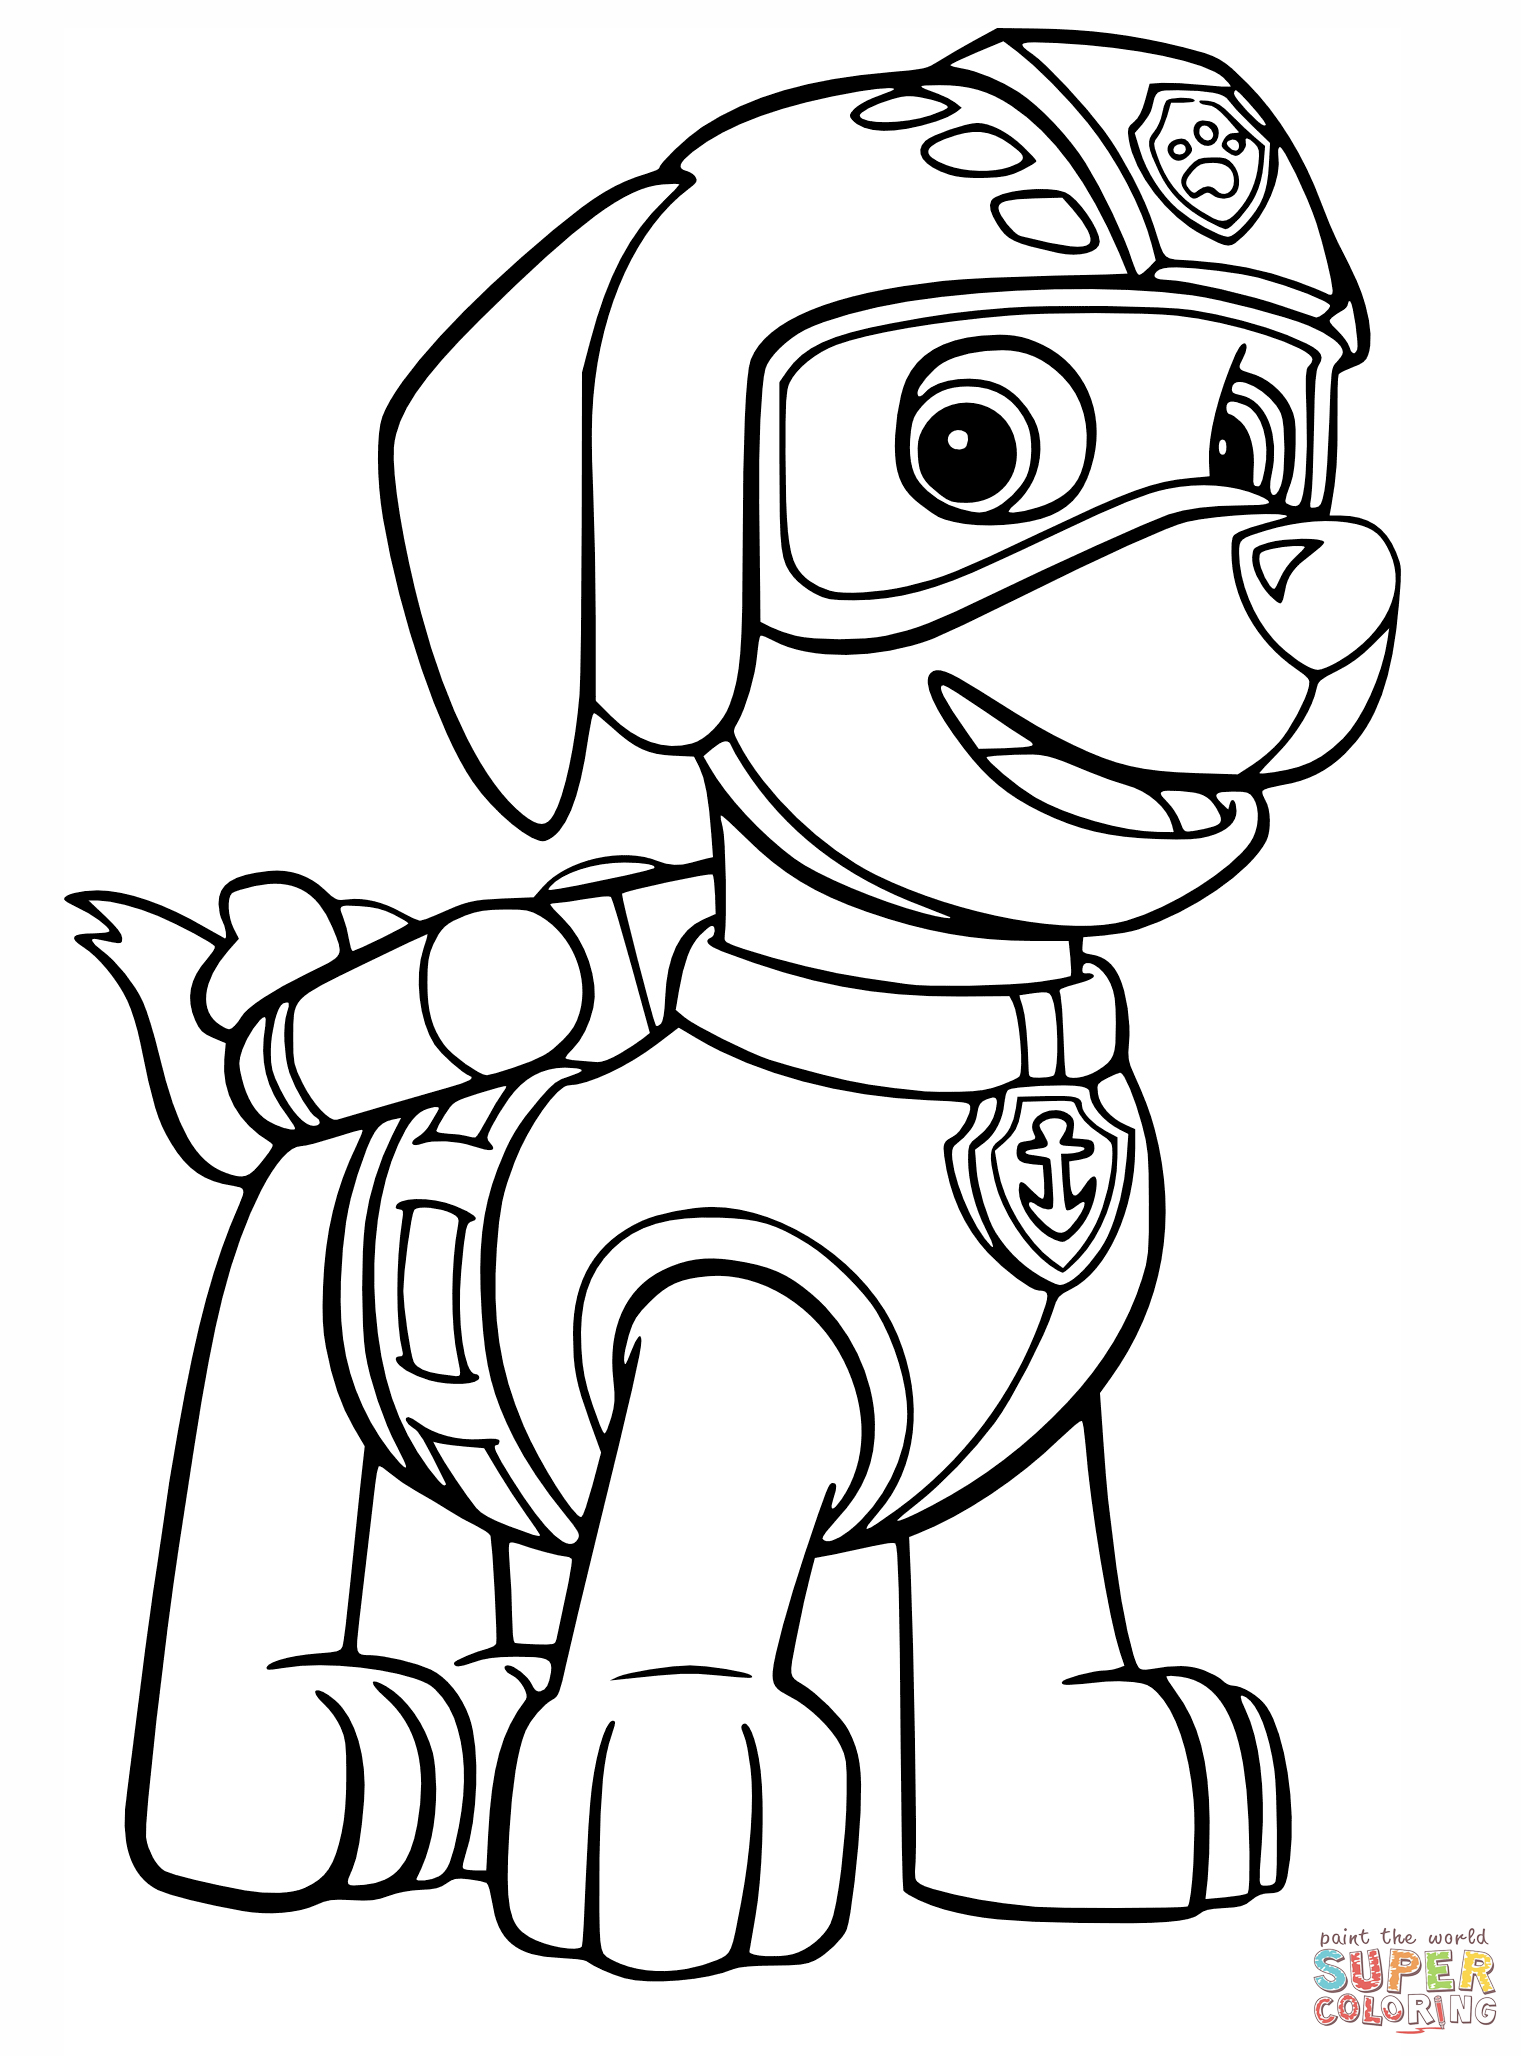 Paw Patrol Coloring Pages Download : Paw patrol coloring page home